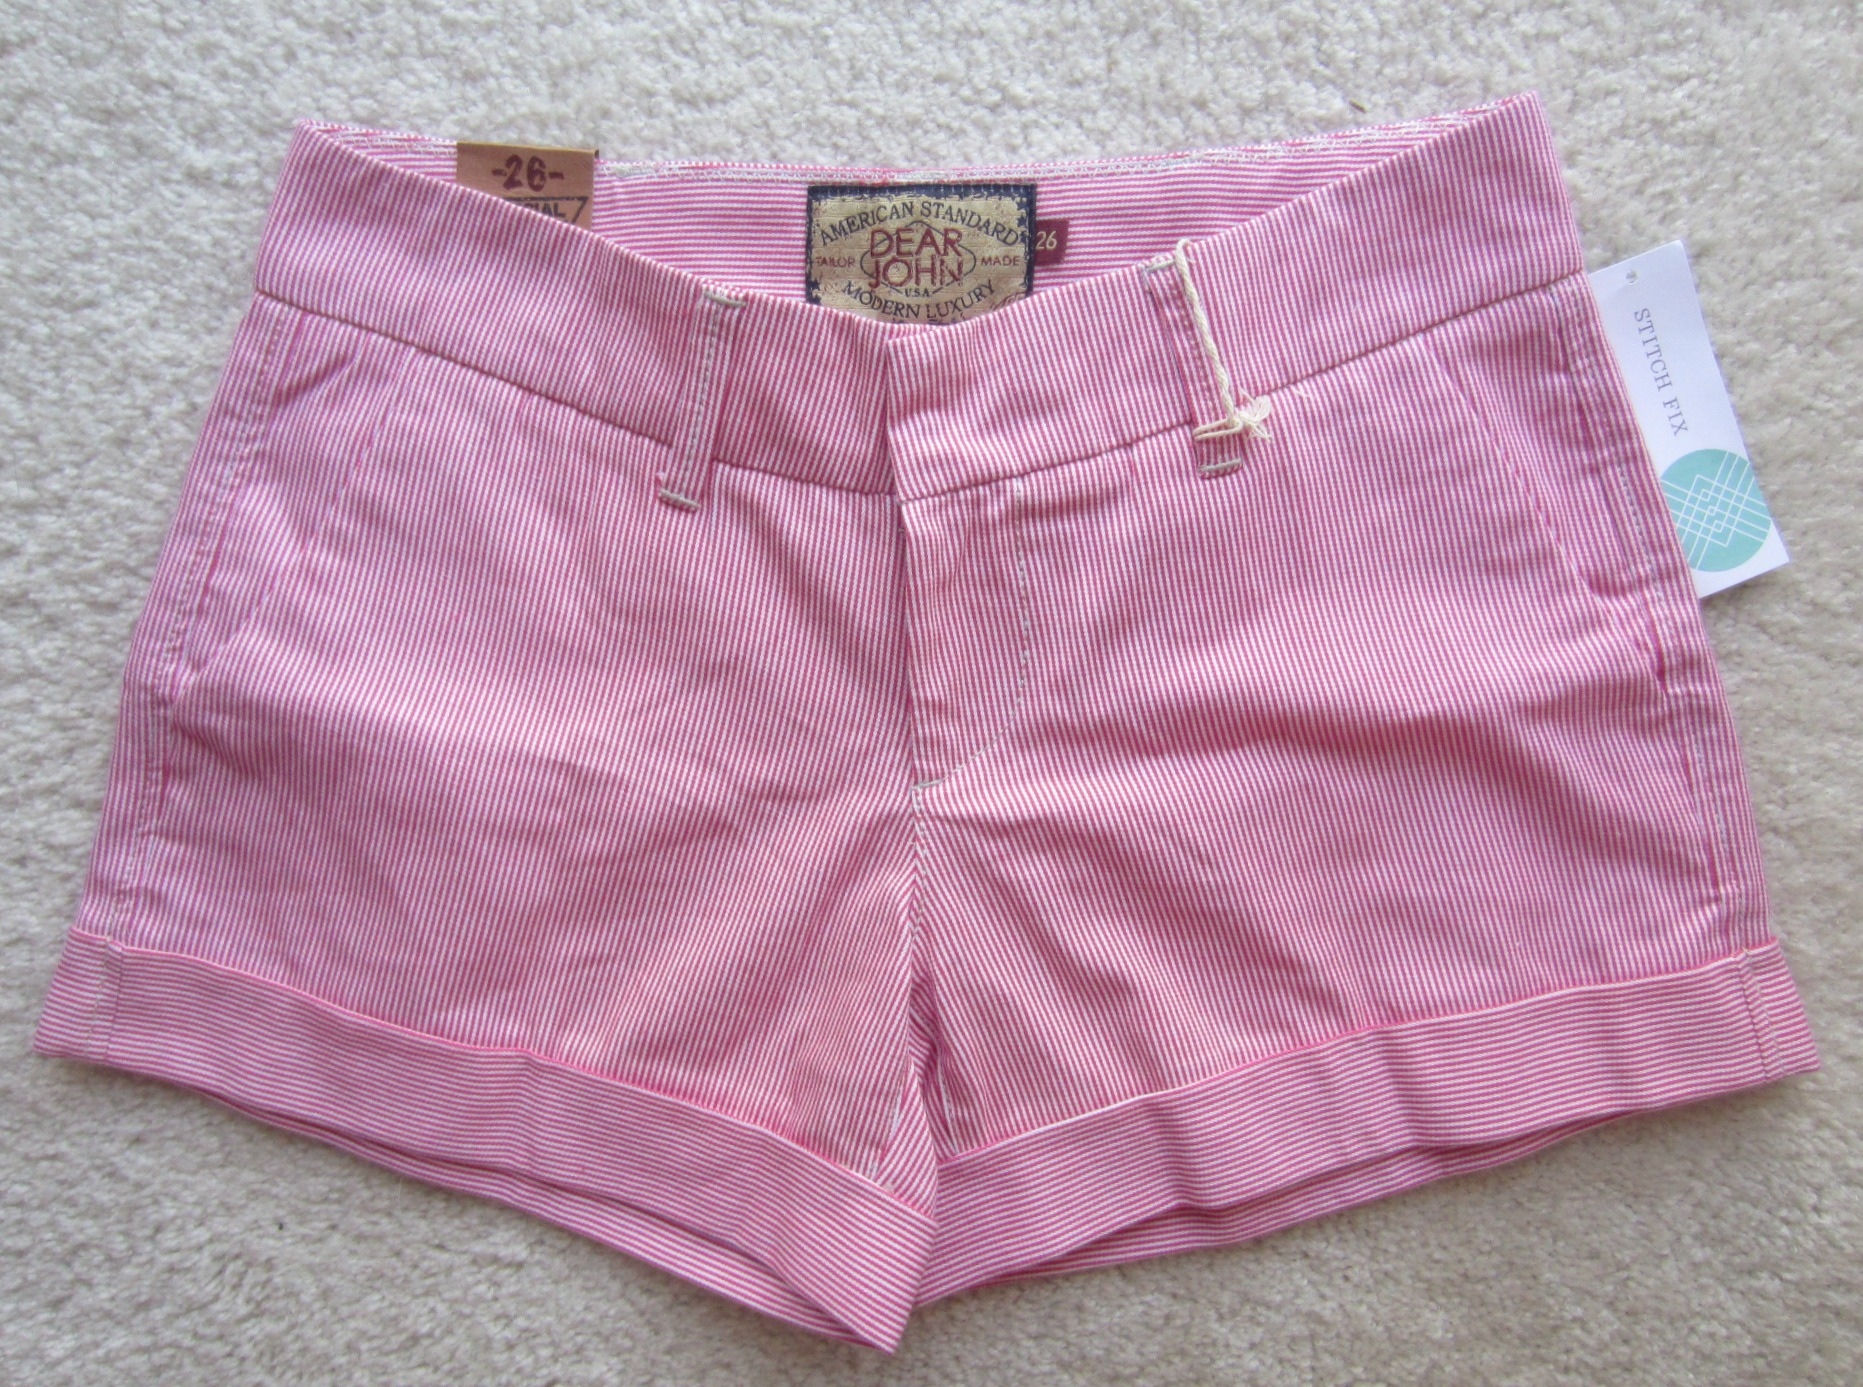 stitch fix dear john finnegan roll cuff chino short pink